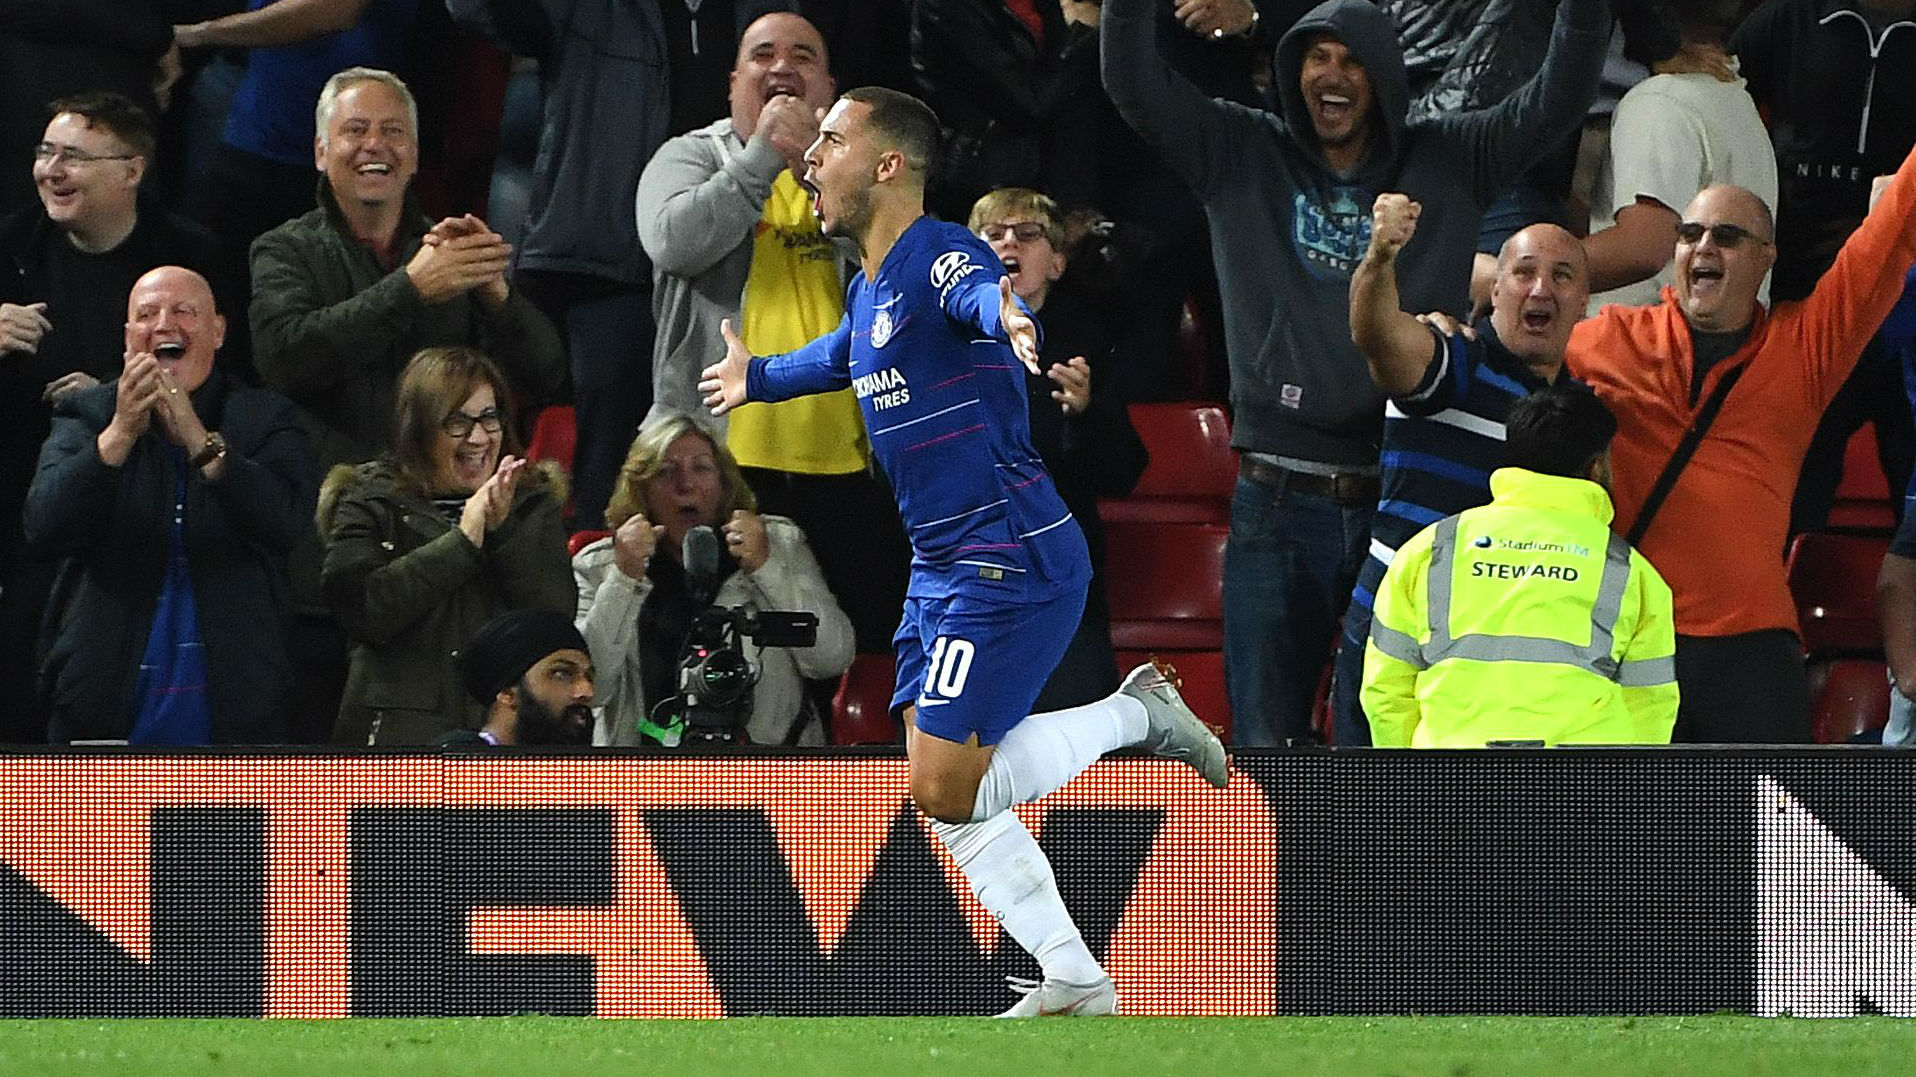 'N'Golo Kante was scared' - Eden Hazard's hilarious reason for scoring victor